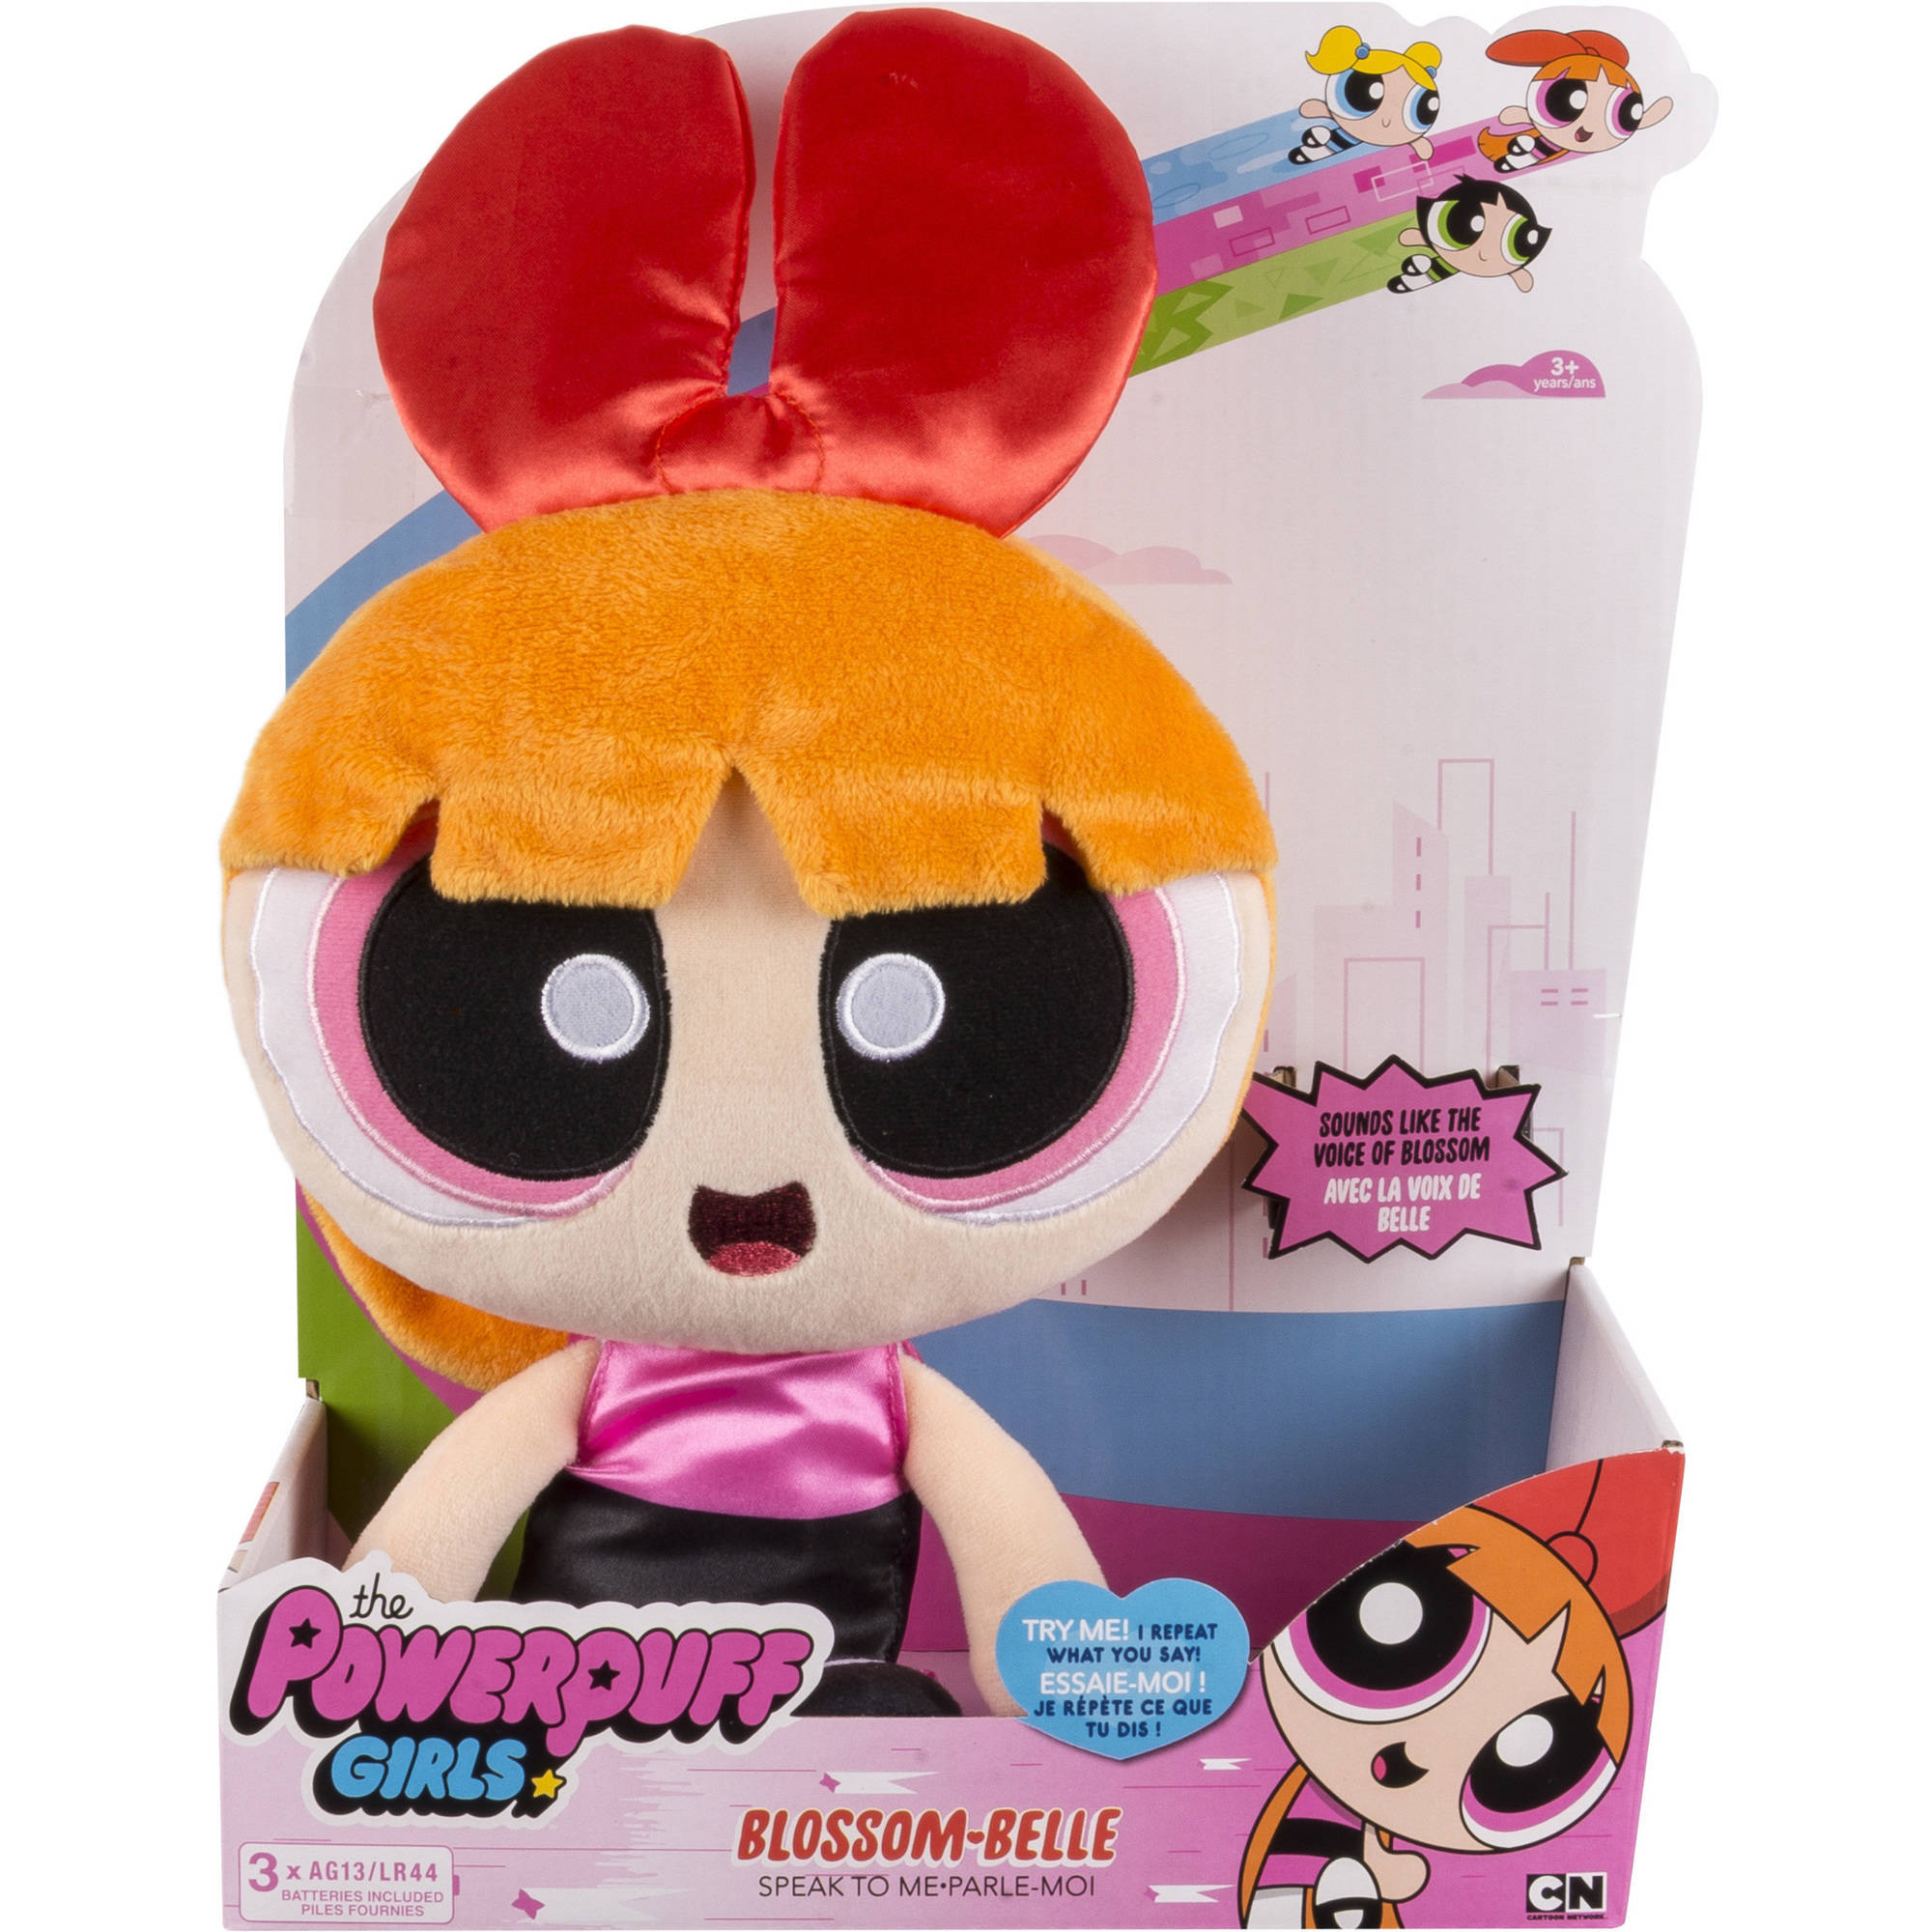 The Powerpuff Girls Interactive Plush With Voice Recording Mode